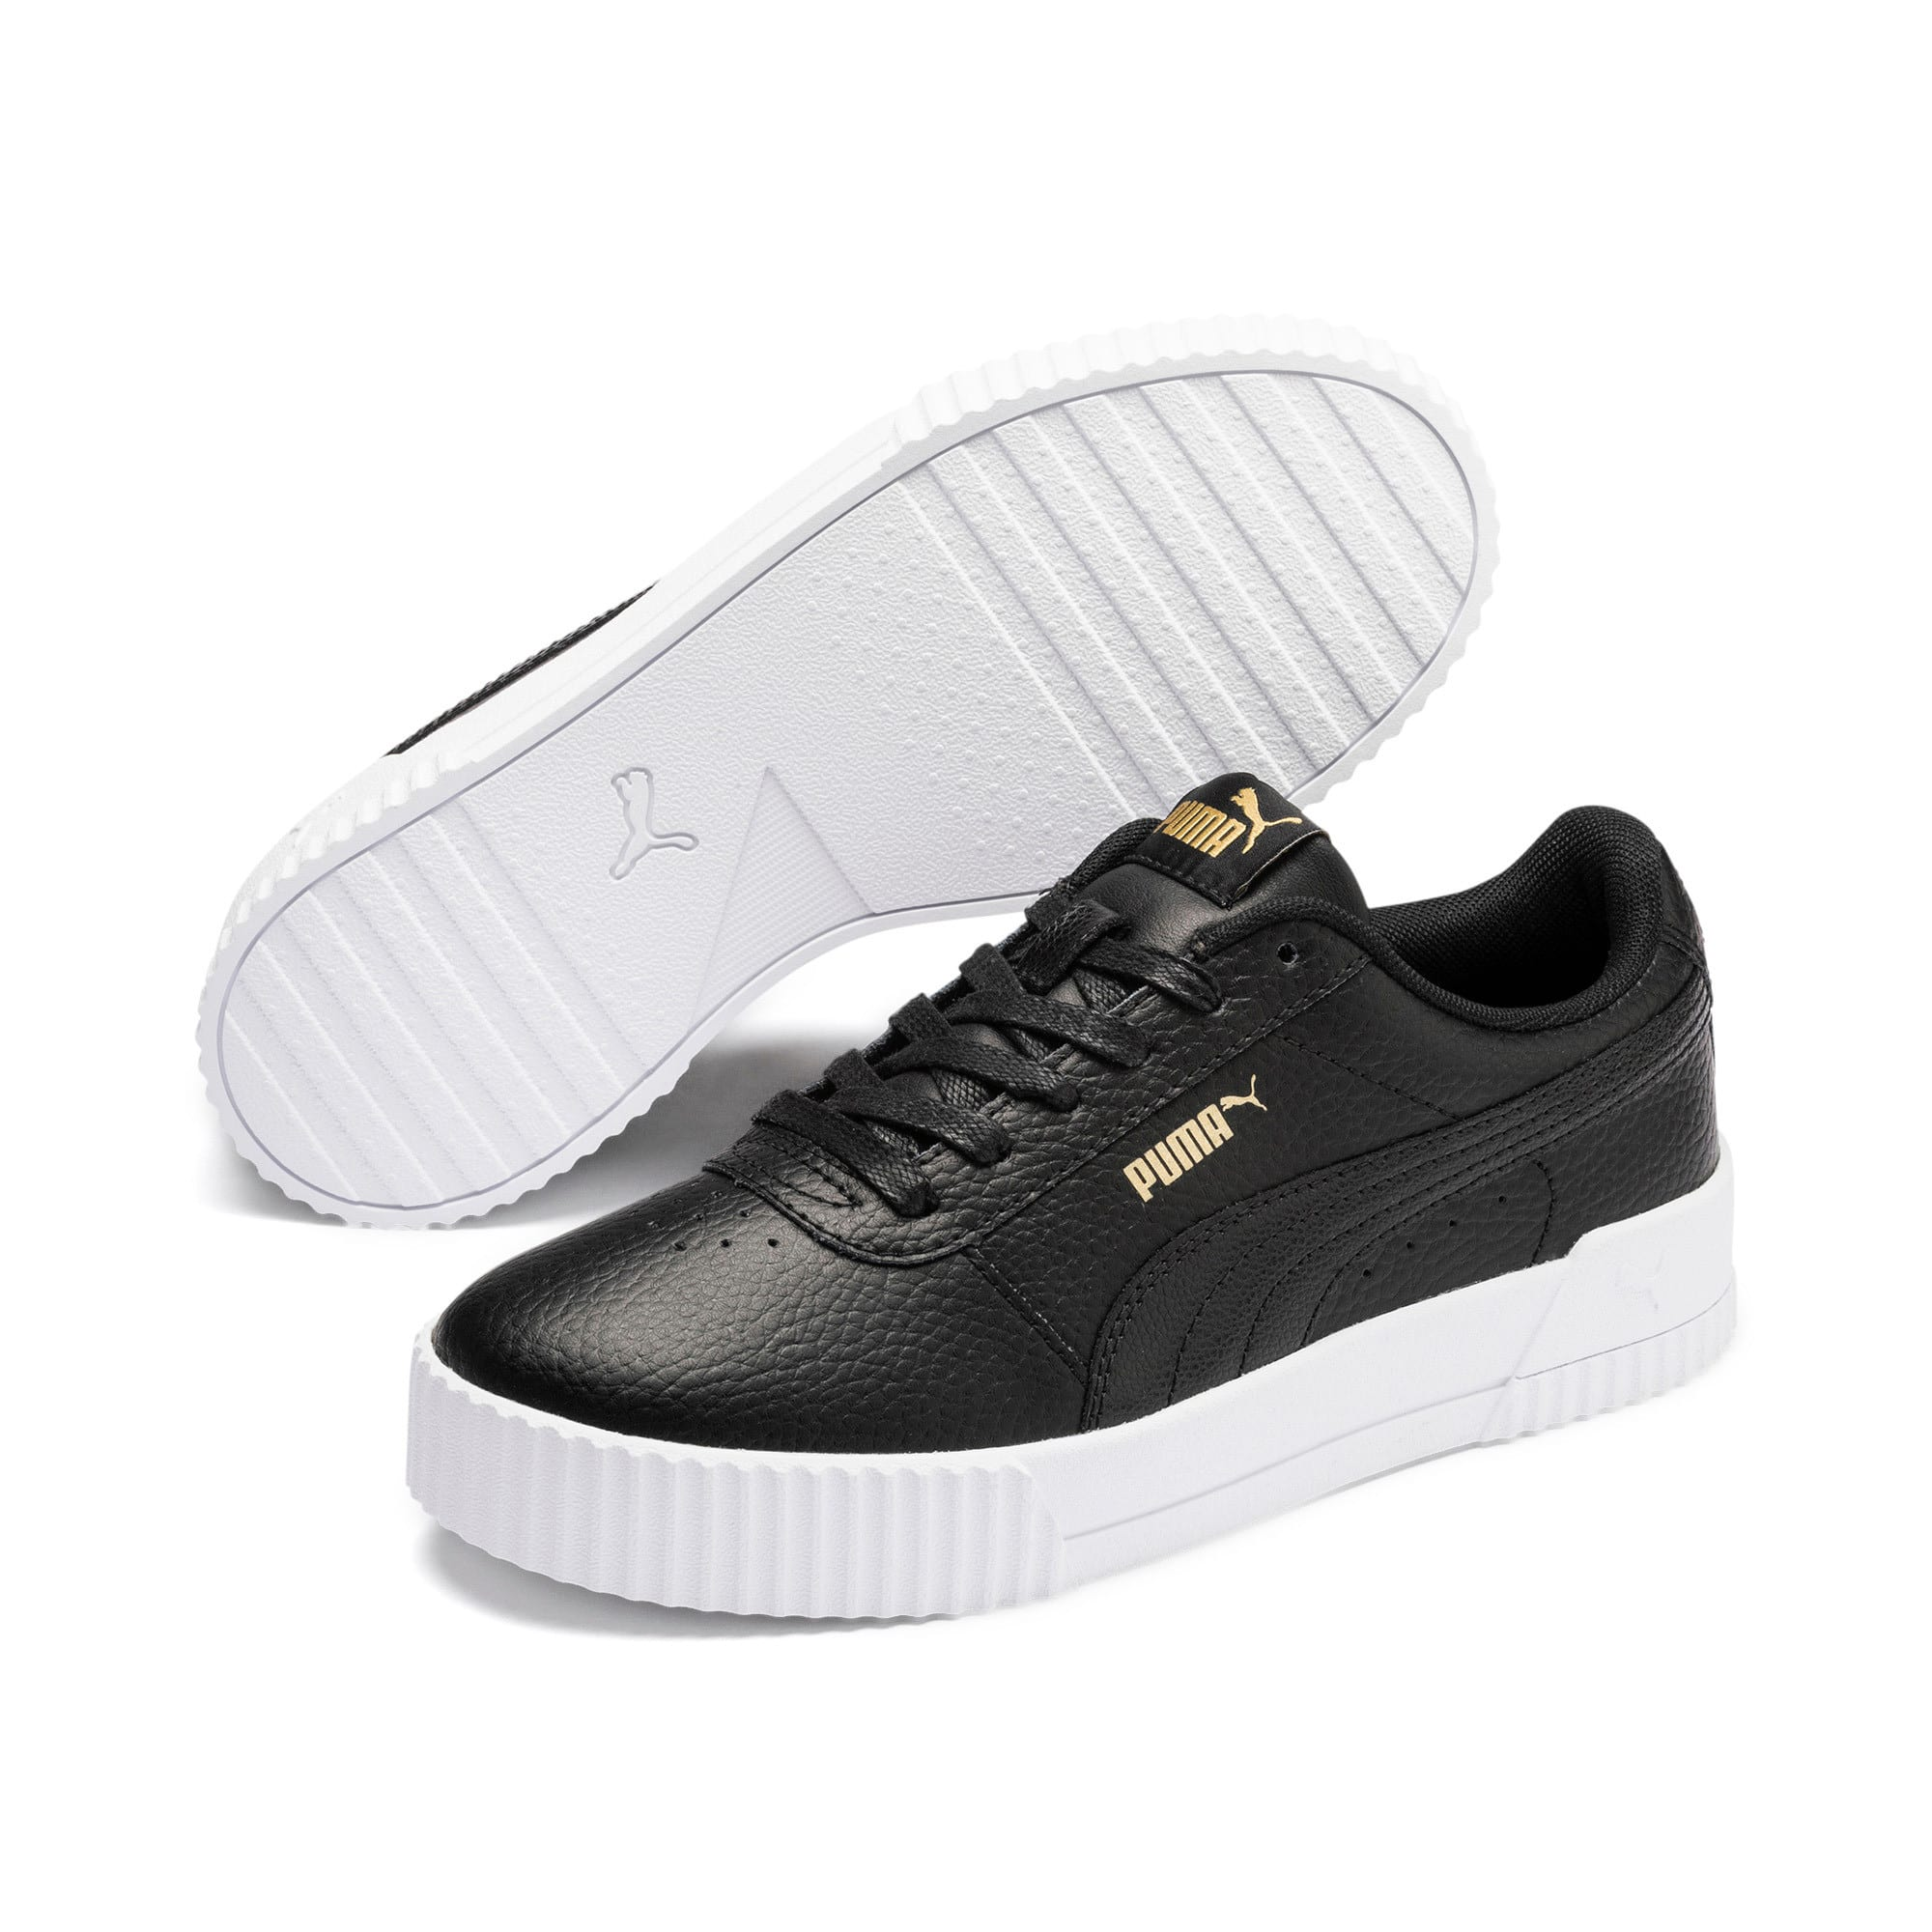 Carina Lux Women's Trainers